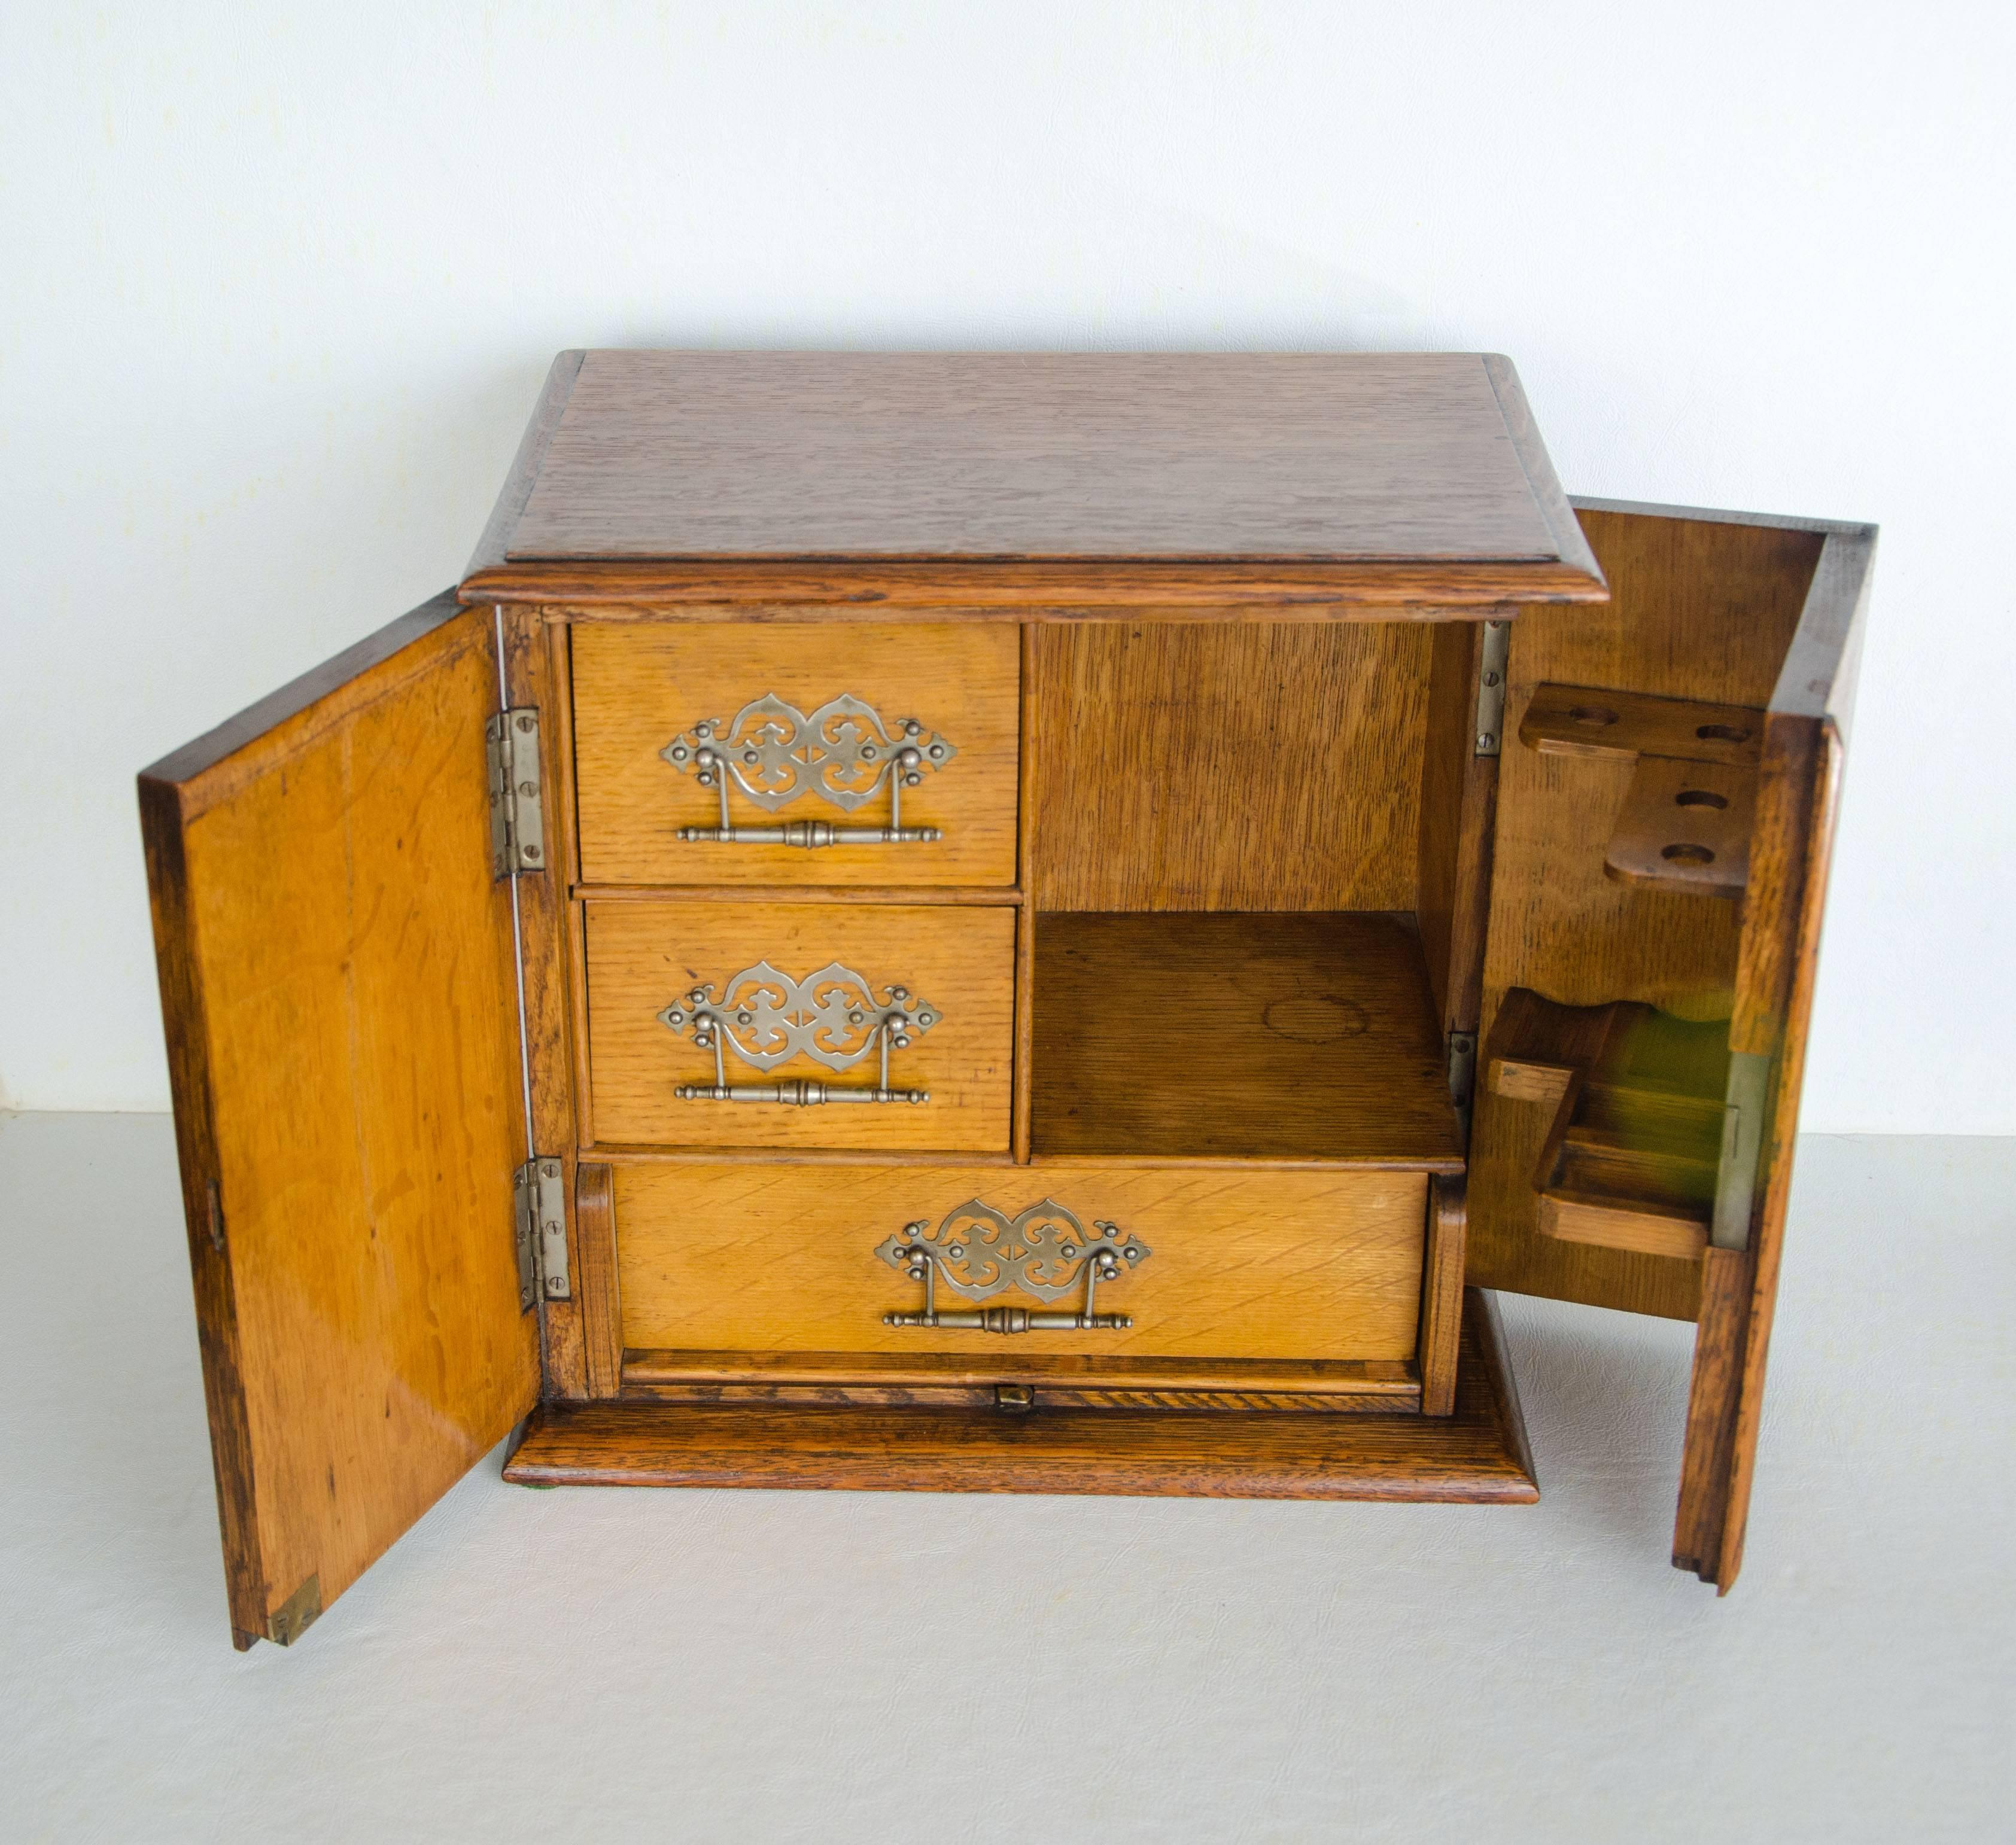 Superieur Antique Oak Pipe And Tobacco Cabinet For Sale At 1stdibs